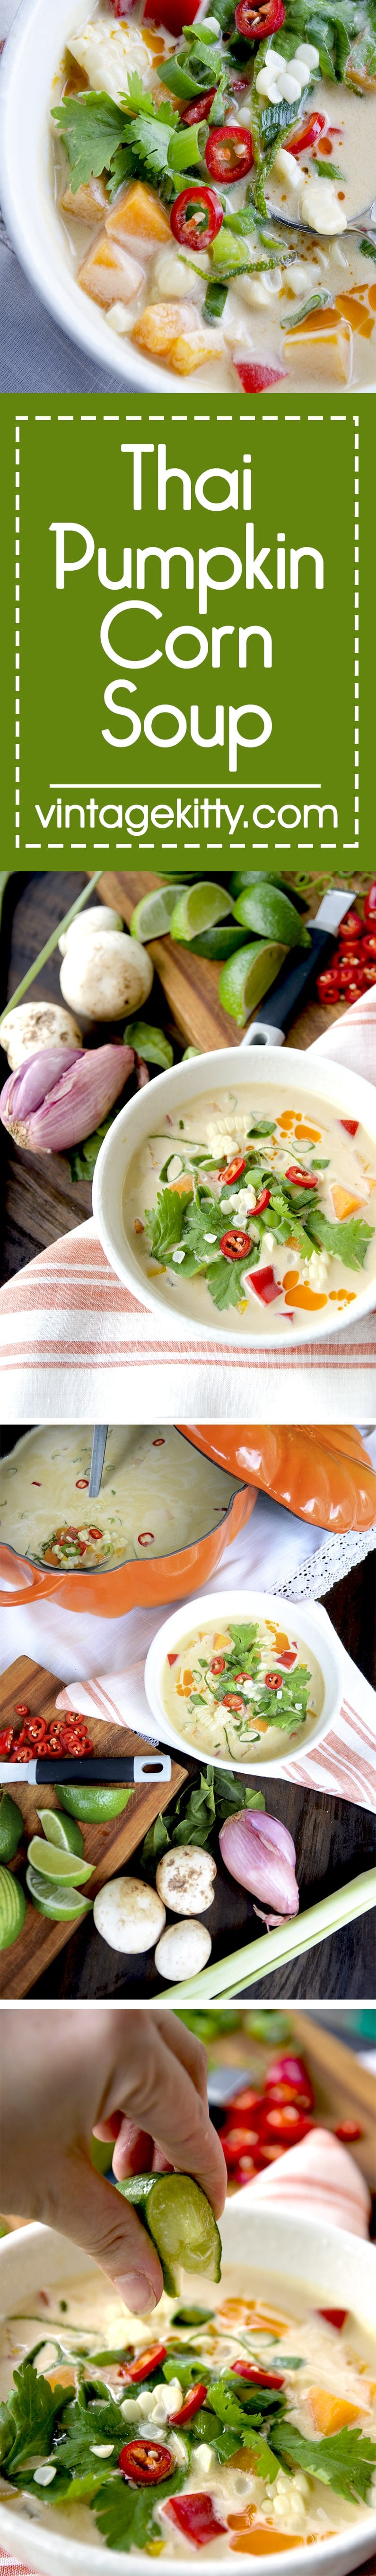 Pumpkin Thai Soup Pin - Thai Pumpkin Corn Soup